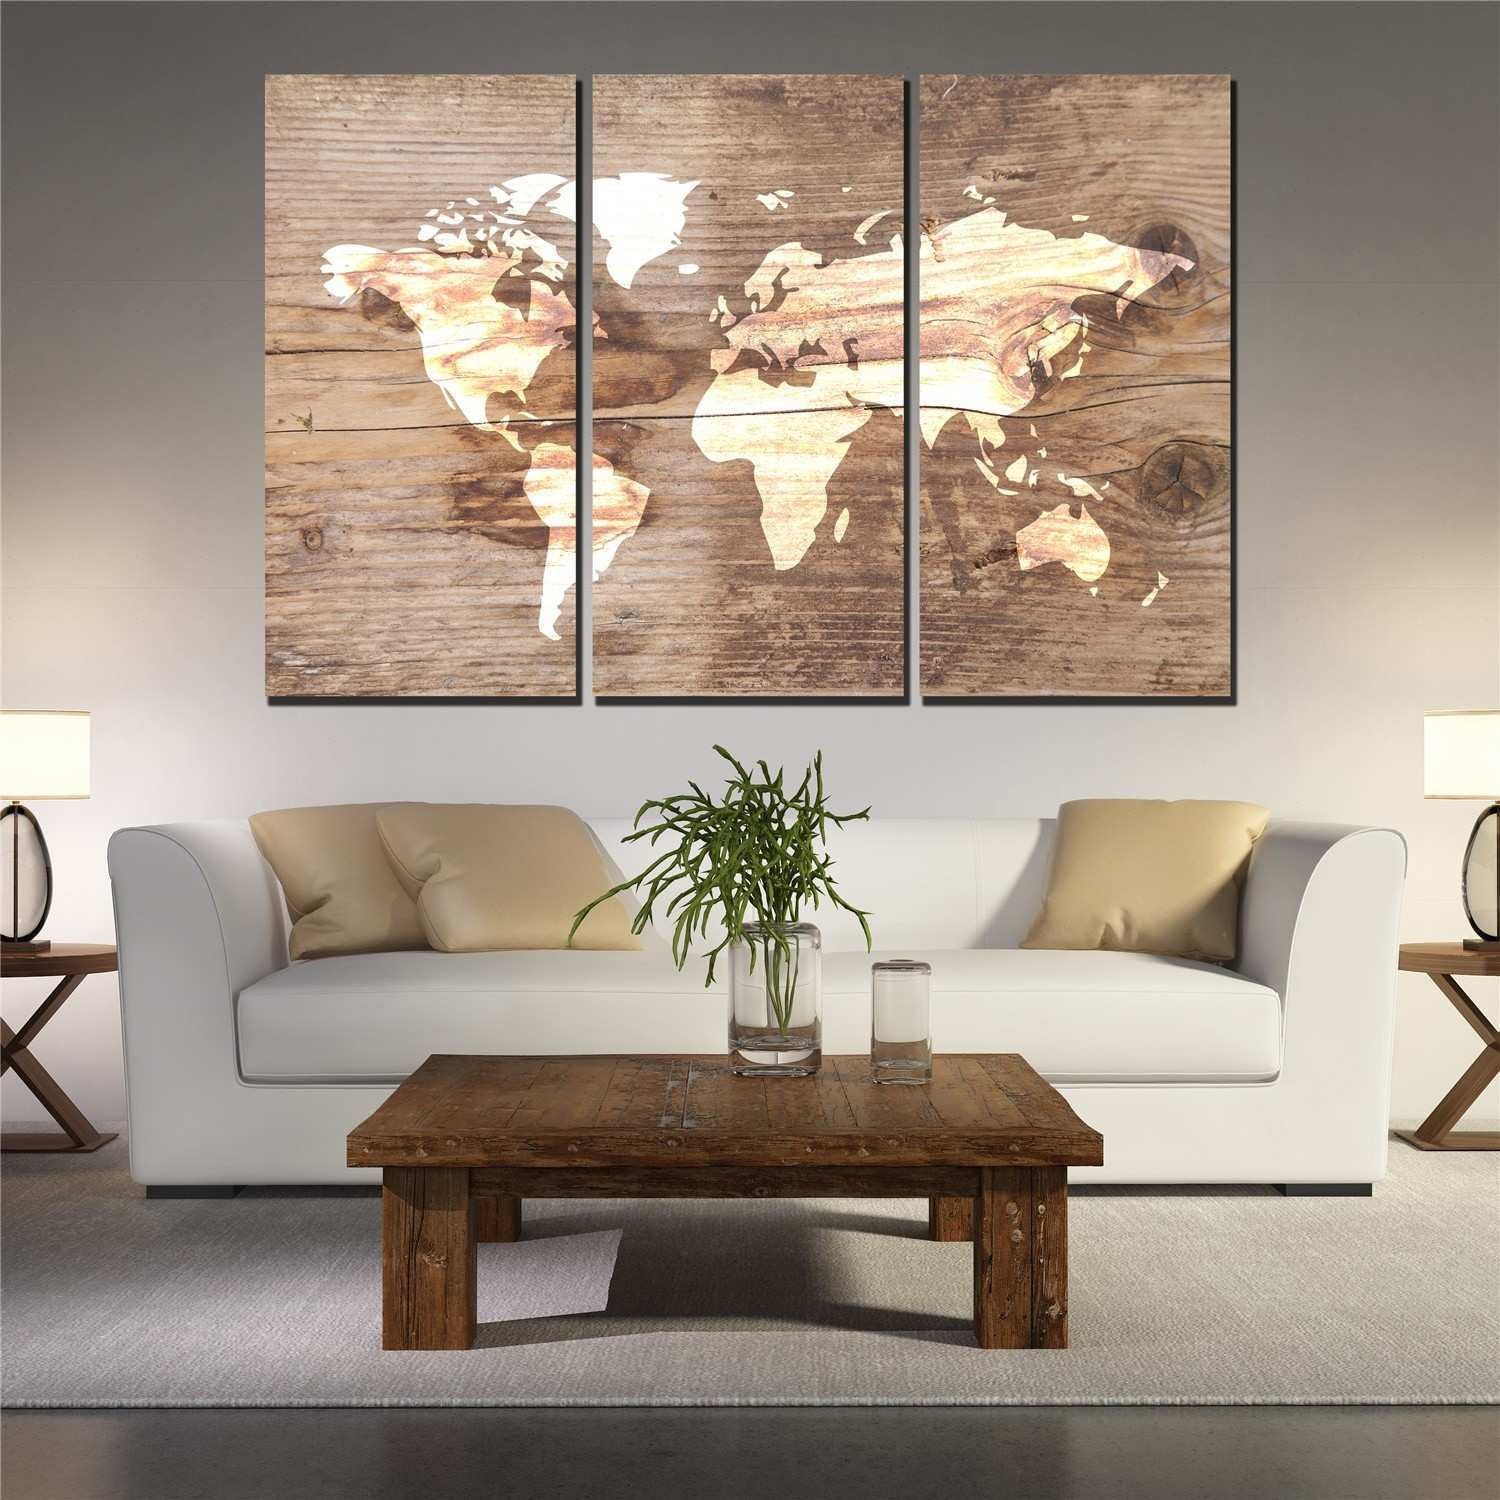 3 Picture Wall Art Beautiful 3 Panel Wrold Map Poster On Vintage Plank Canvas Wall Art